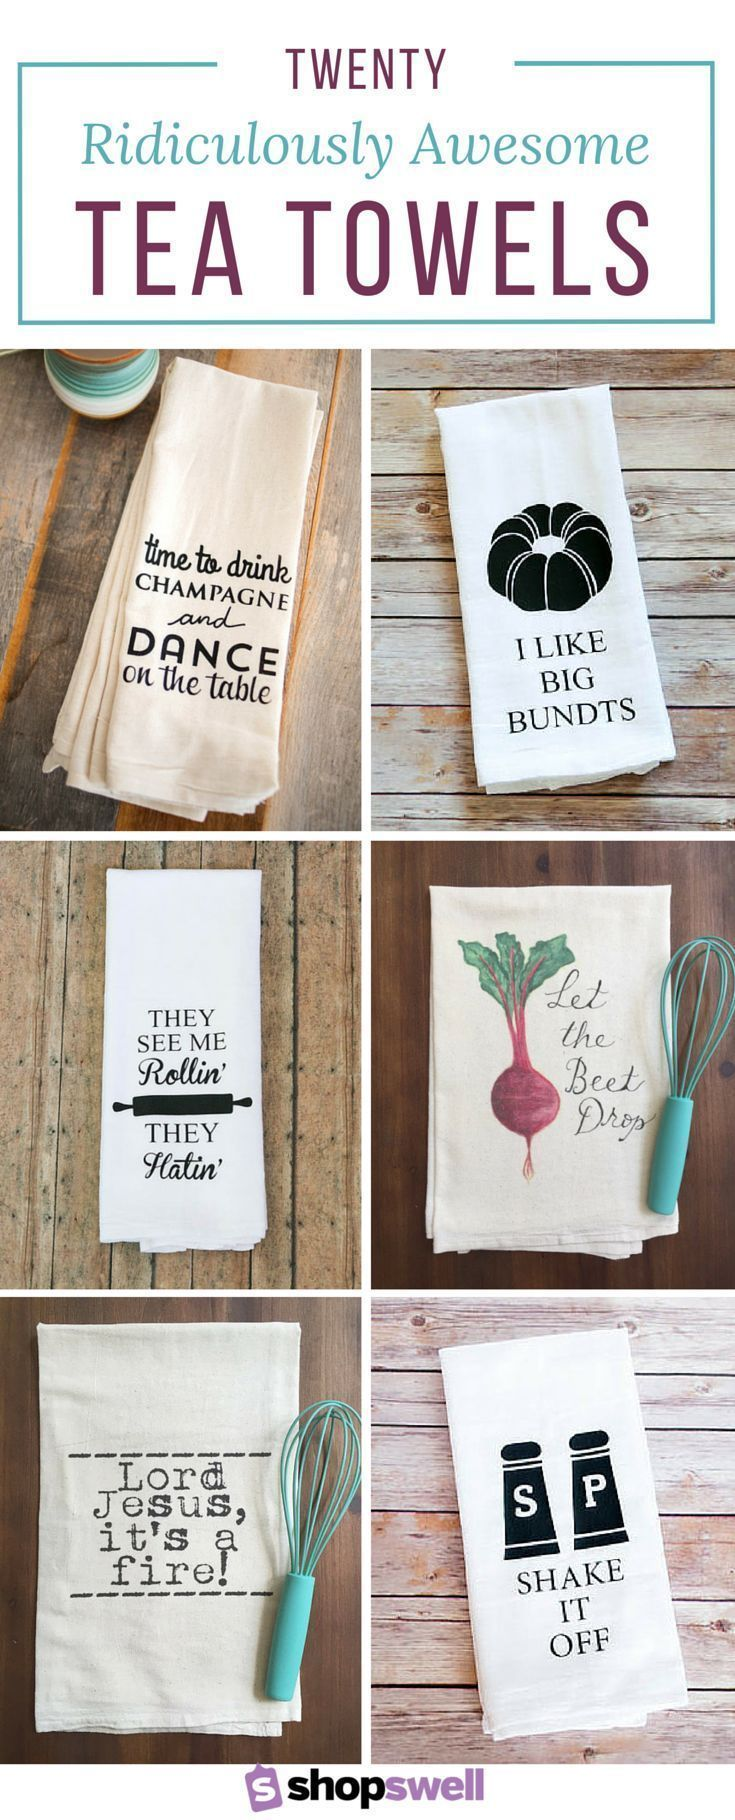 """The kitchen isn't just for cooking, it's for dancing. If you like to """"chop it like it's hot"""" you need at least one (or 5!) of these ridiculously awesome tea towels."""